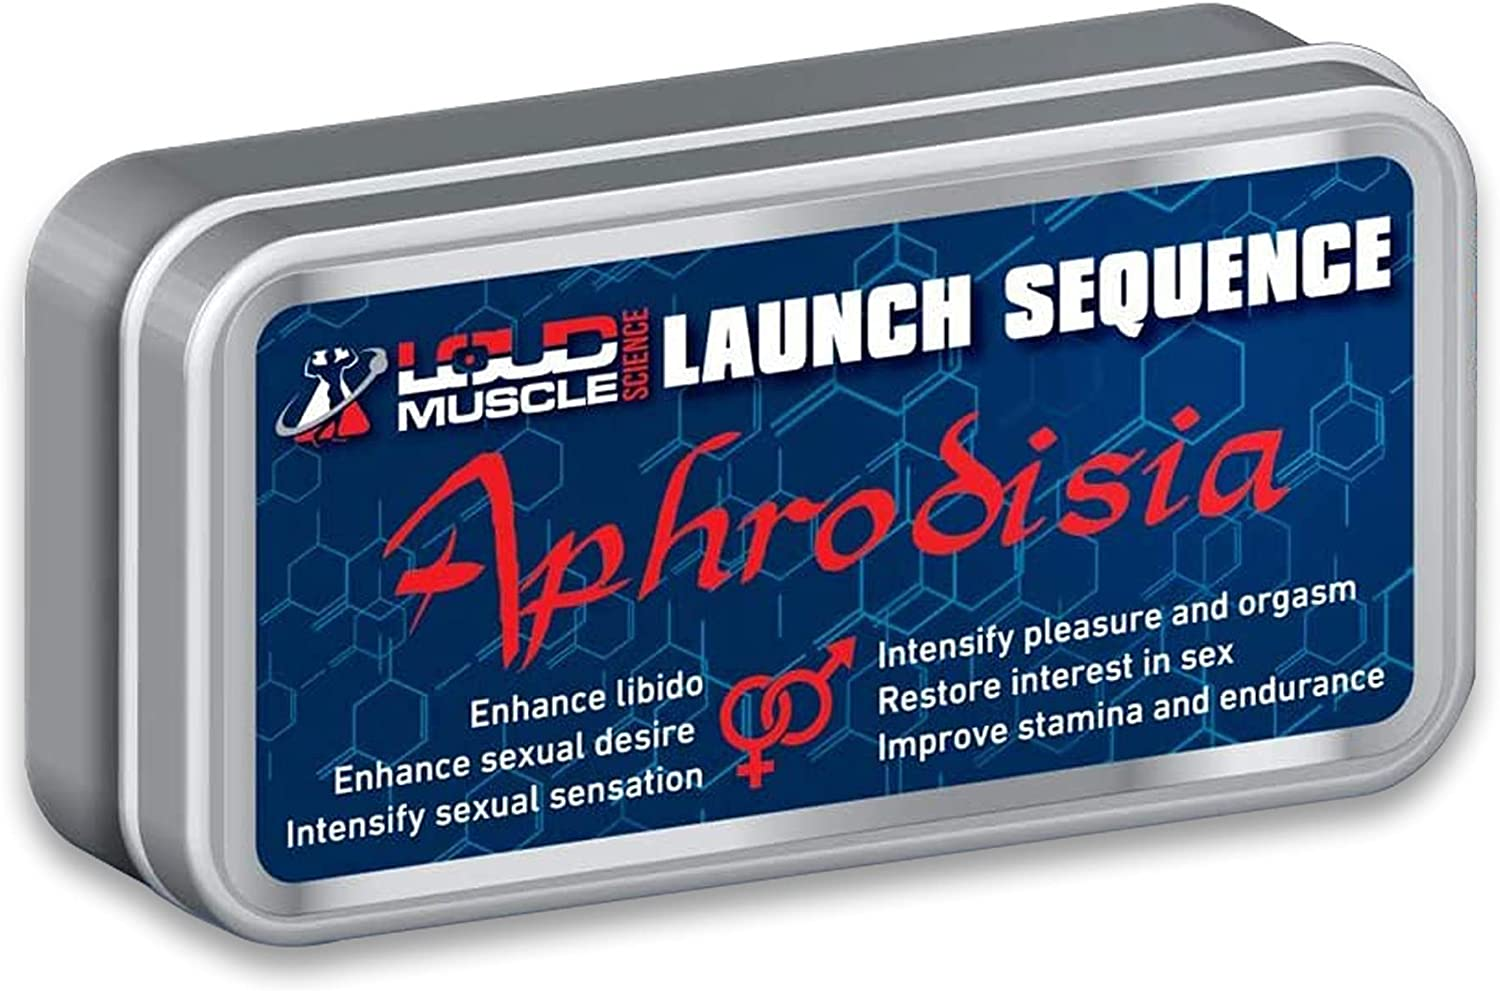 Loud Muscle Launch Sequence Helps Max 84% OFF Ingredients Supplement Sales Natural